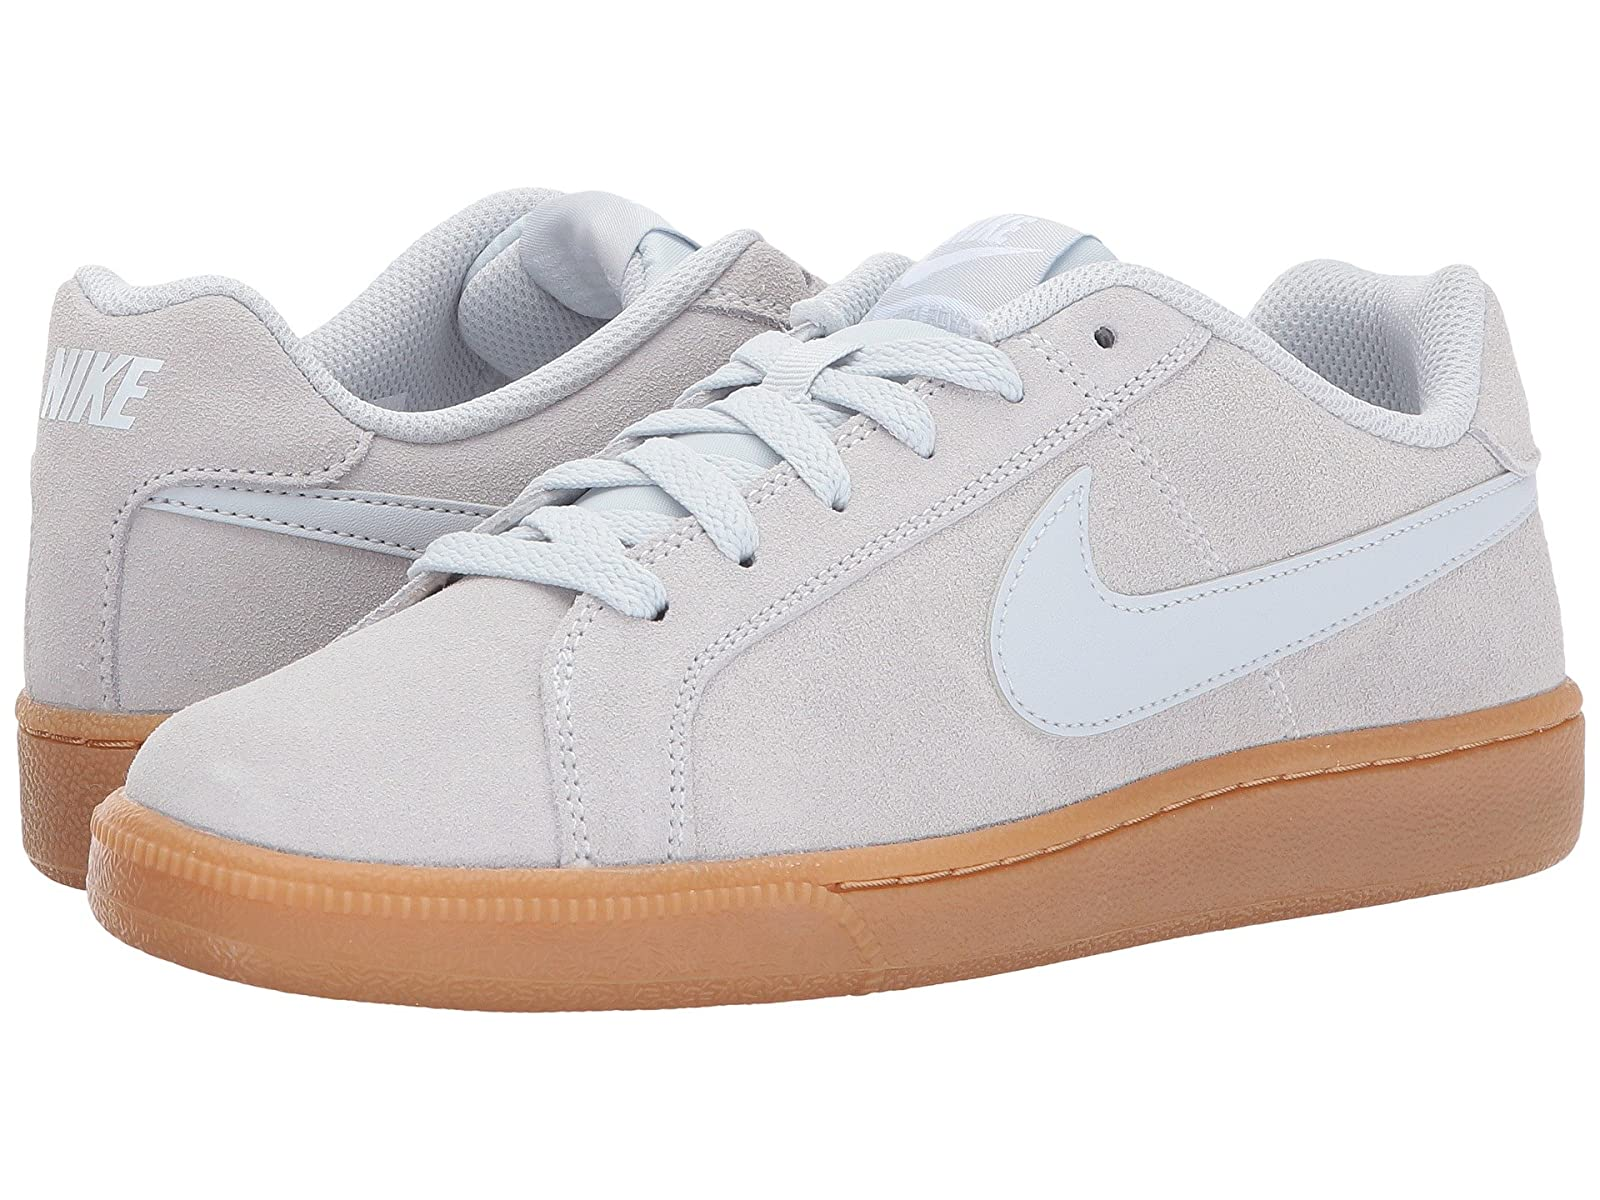 Nike Court Royale SuedeCheap and distinctive eye-catching shoes